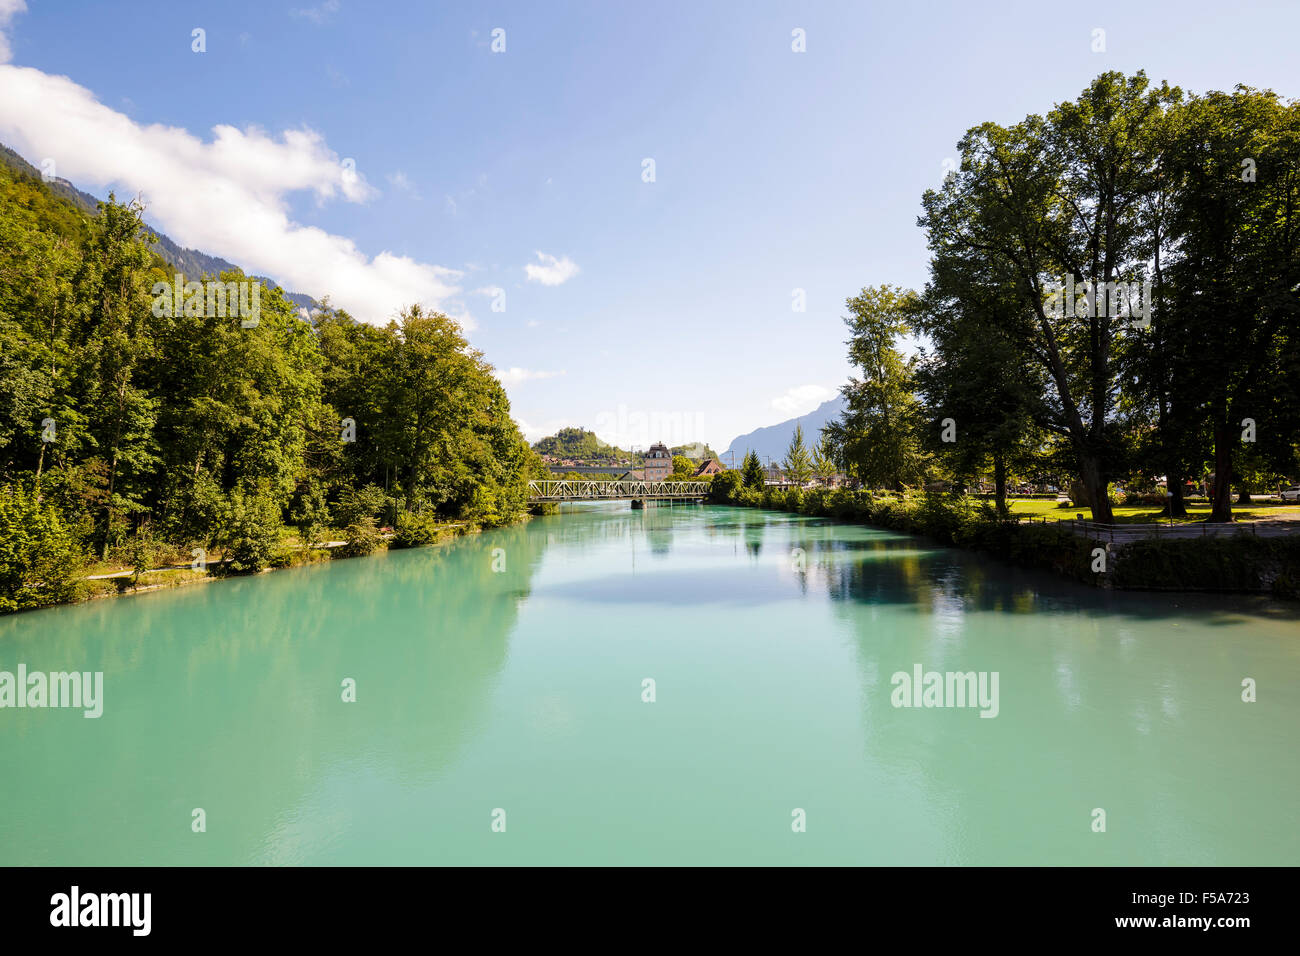 The river Aare - Stock Image